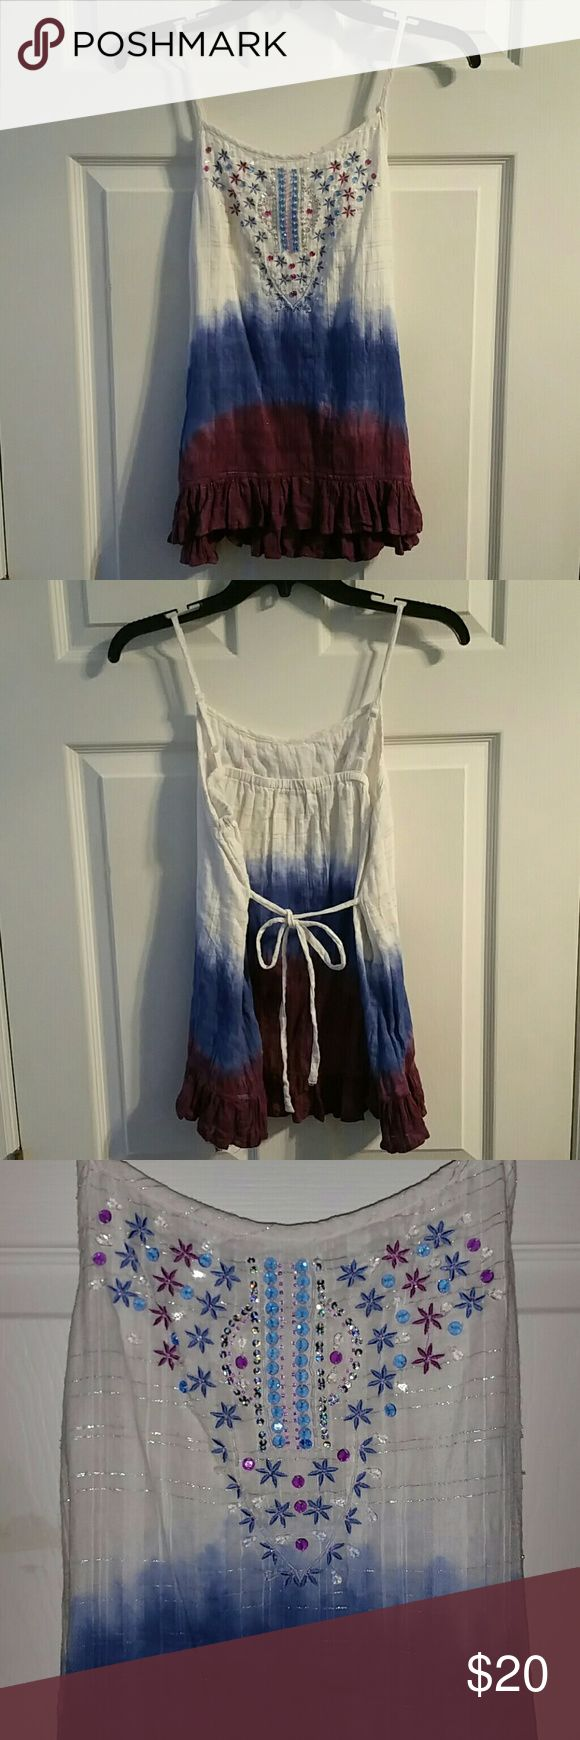 CUTE GIRLS/WOMENS TYE DYE TANK TOP BEADS&SEQUINS JUSTICE CUTE! DIPPED TYE DYE TANK TOP. EMBROIDERED FLOWERS, BEADS & SEQUINS, TIES IN THE BACK, ADJUSTABLE STRAPS, RUFFLES ON BOTTOM.WHITE, BLUES, PURPLE, AND SILVER.   SIZE: 18 XXL (GIRLS)  JUNIORS & WOMEN Are petite & XS/S will fit!  FAST SHIPPING! Same or Next Day Shipping!  SHELL: 99% Cotton 1% Other Fibers(silver threads) LINING: 100% Cotton   Worn 2 Times. Gently Laundered!  No Smoking, Buy It Now, Bundle Discounts Available, Reasonable…